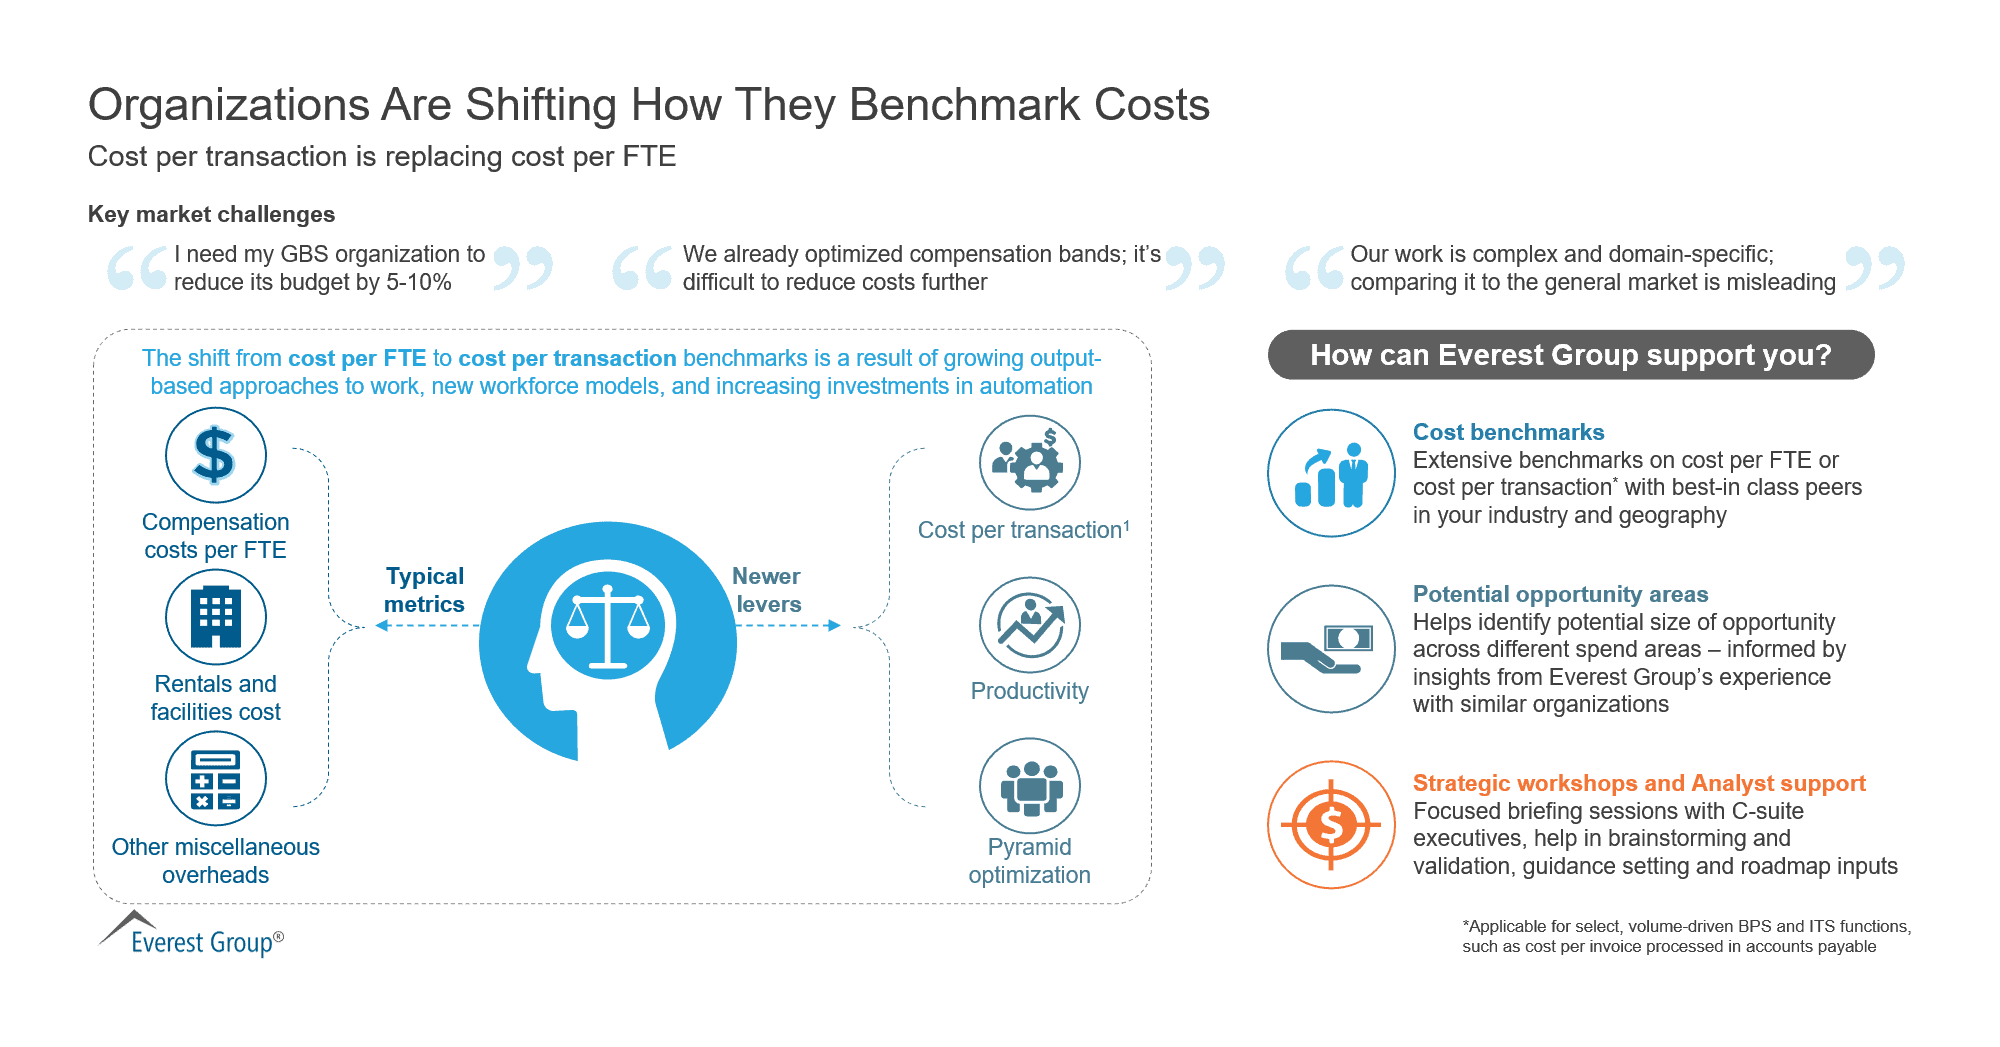 Organizations Are Shifting How They Benchmark Costs